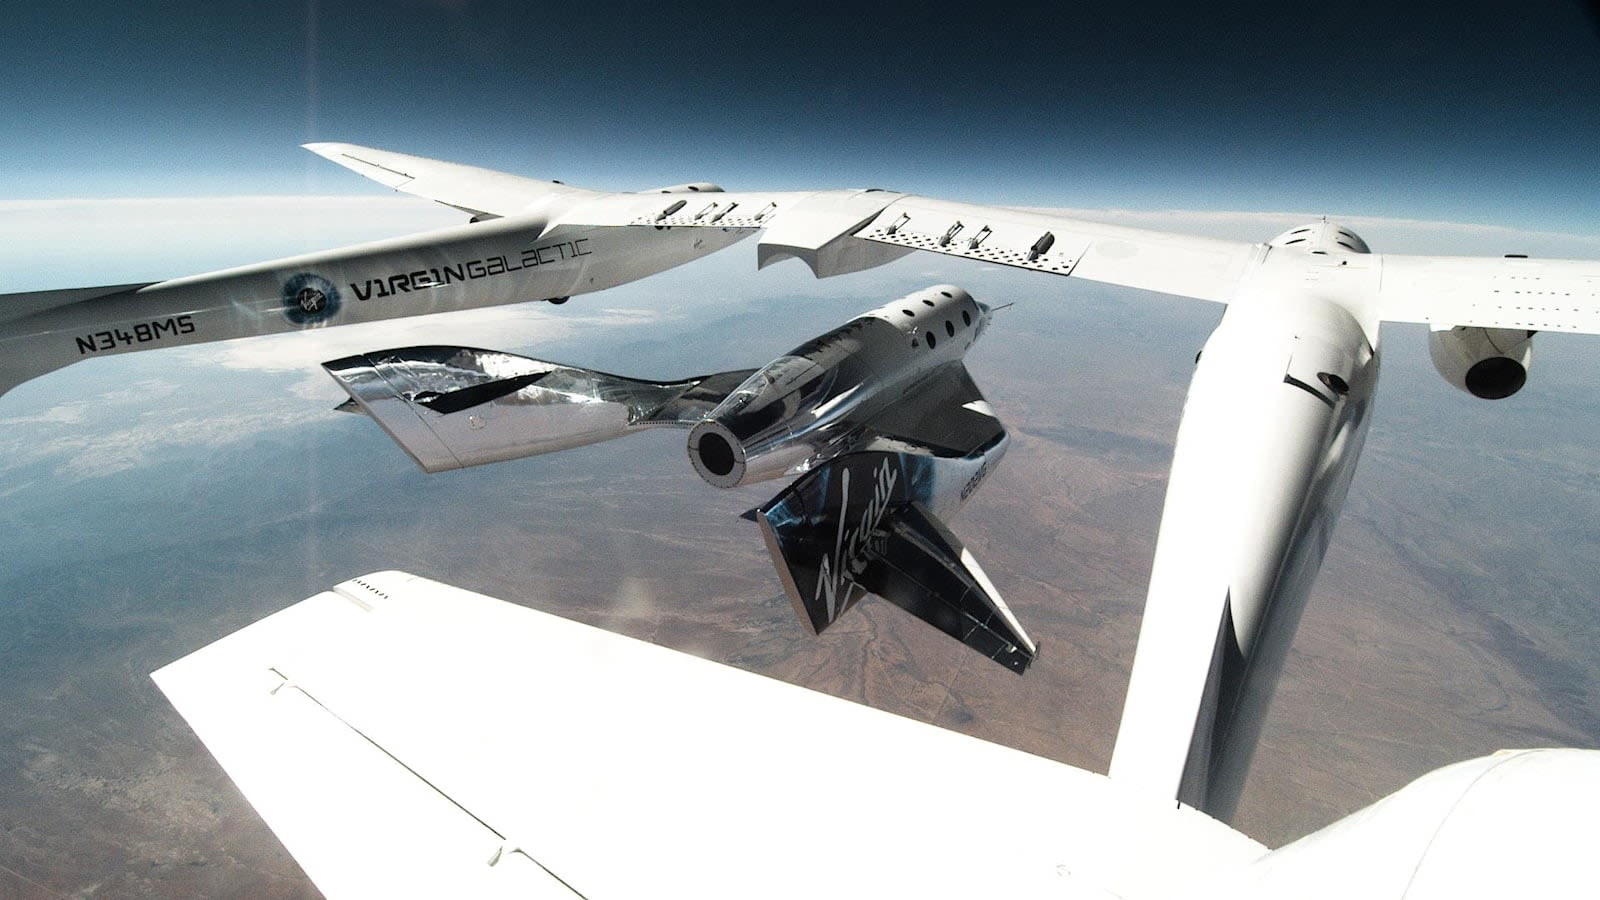 Virgin Galactic high in the sky above vast land